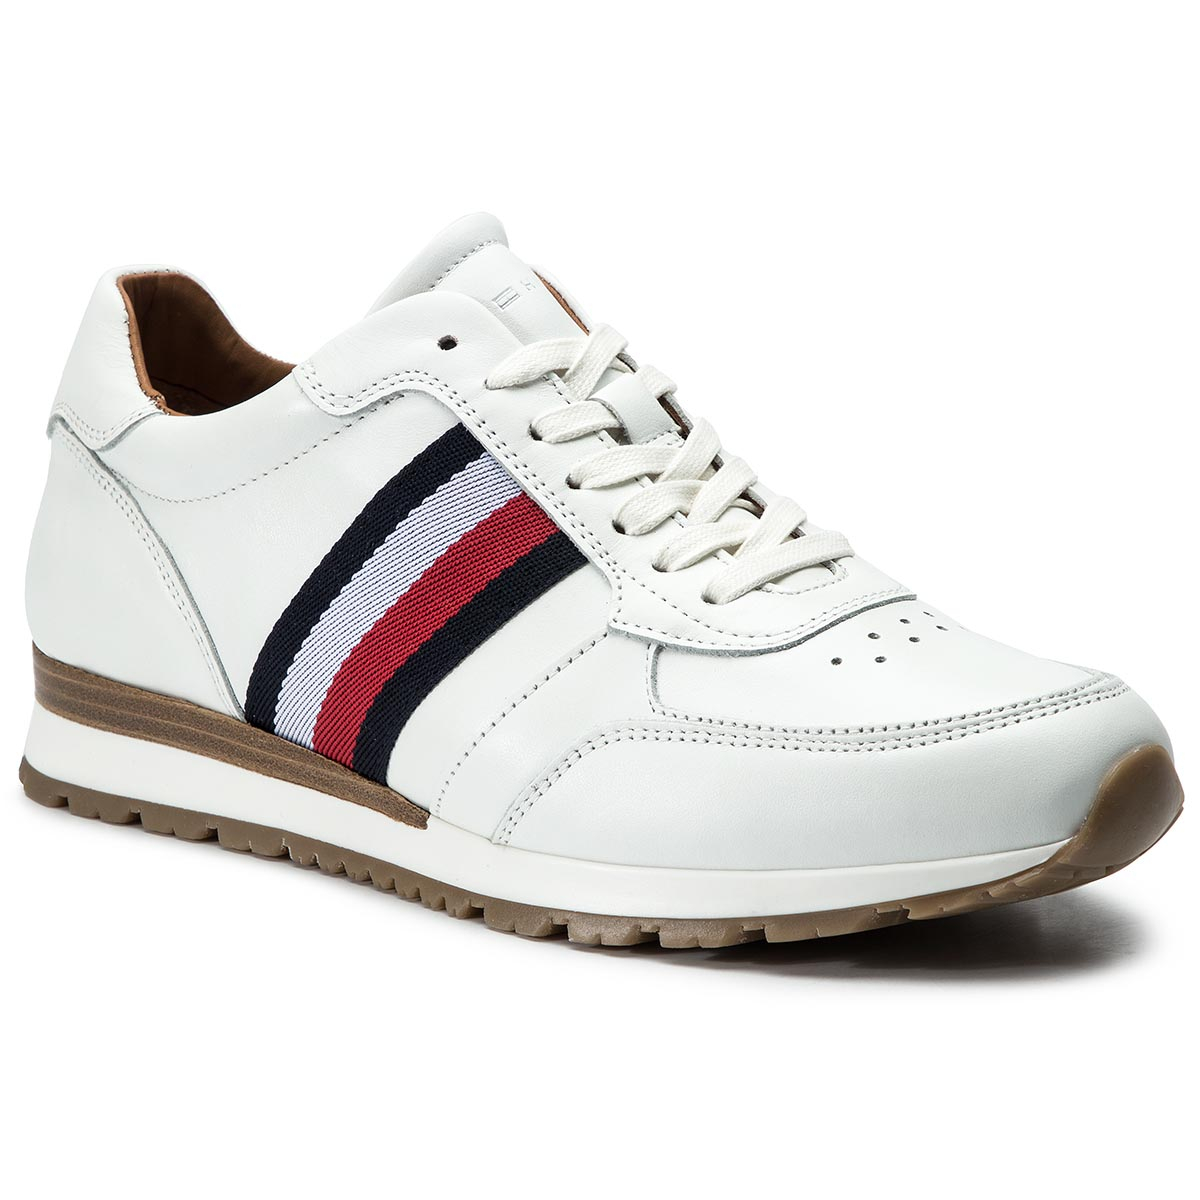 97995f6af650 Sneakersy TOMMY HILFIGER - Luxury Corporate Leather Runner FM0FM00960 White  100